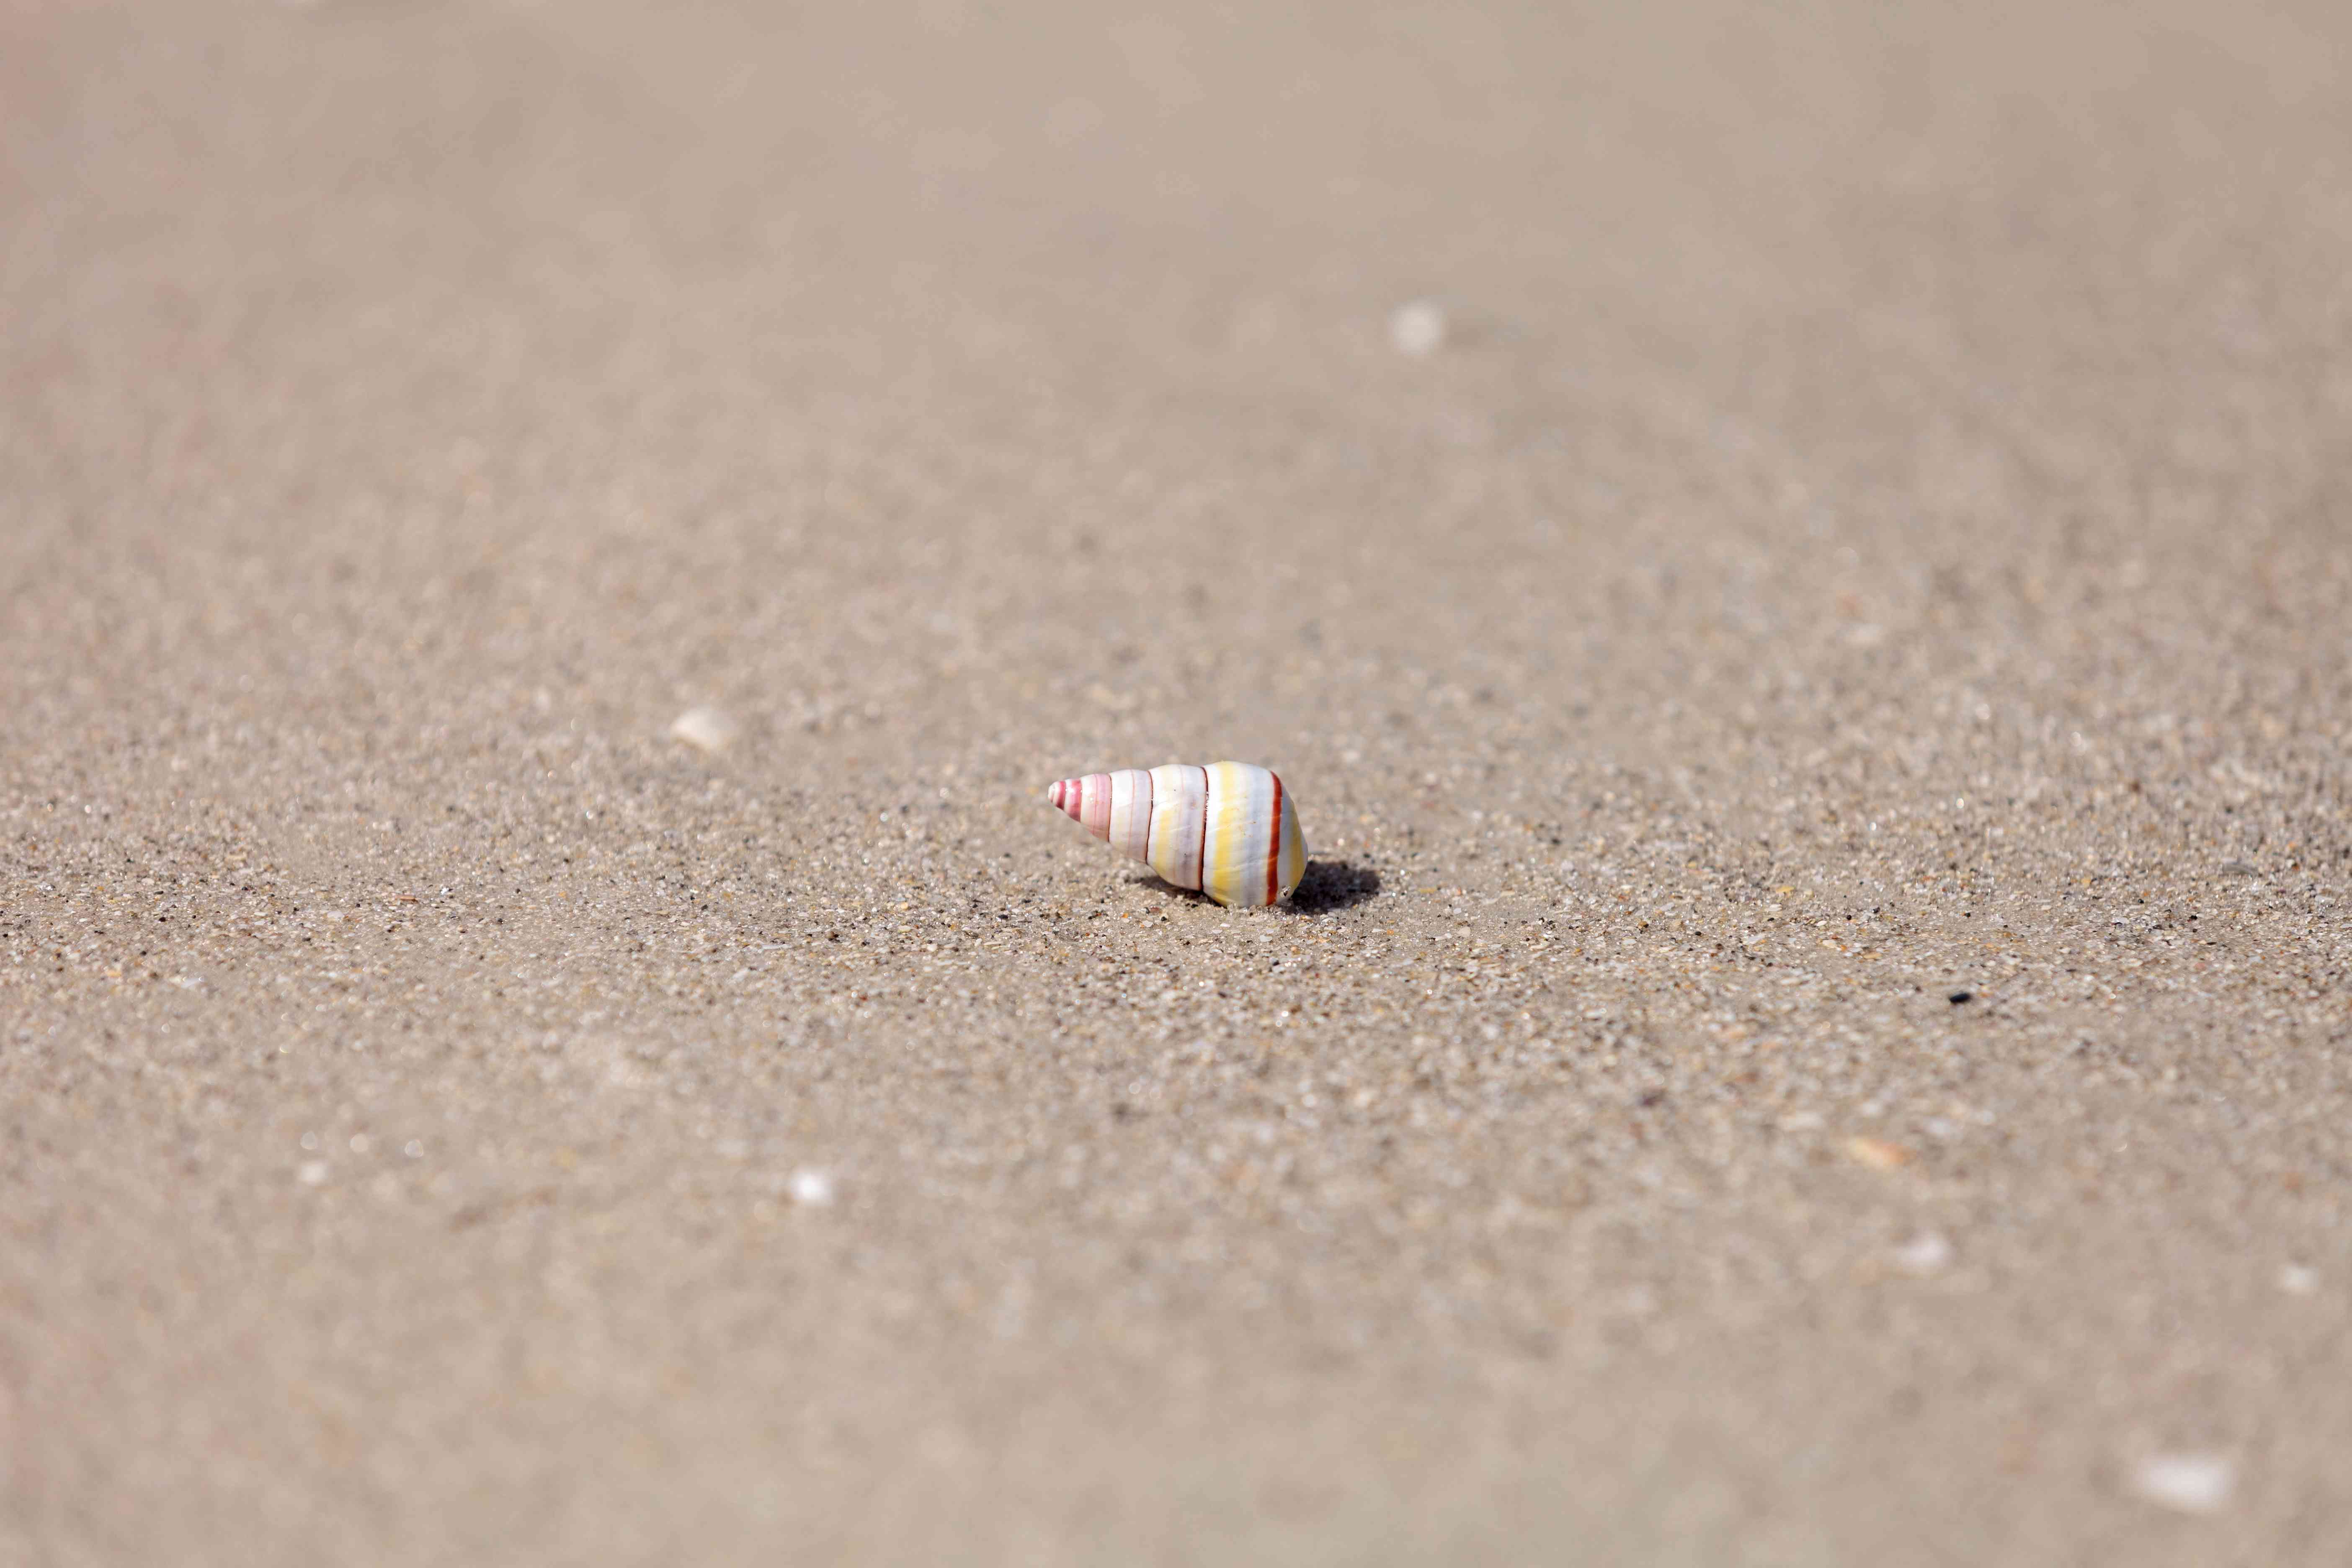 Candy cane snail shell on sand